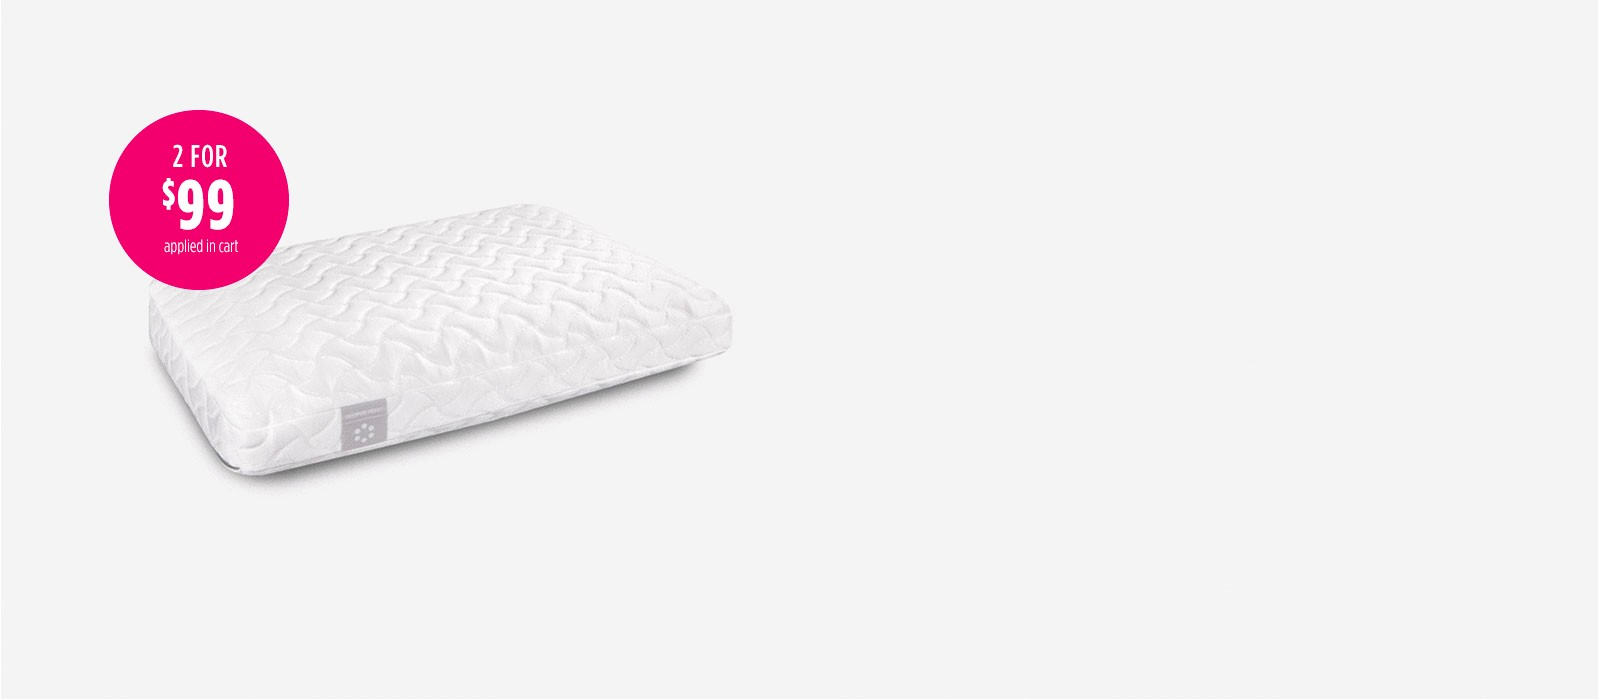 pedic cloud pillow tempur index standard tempurpedic